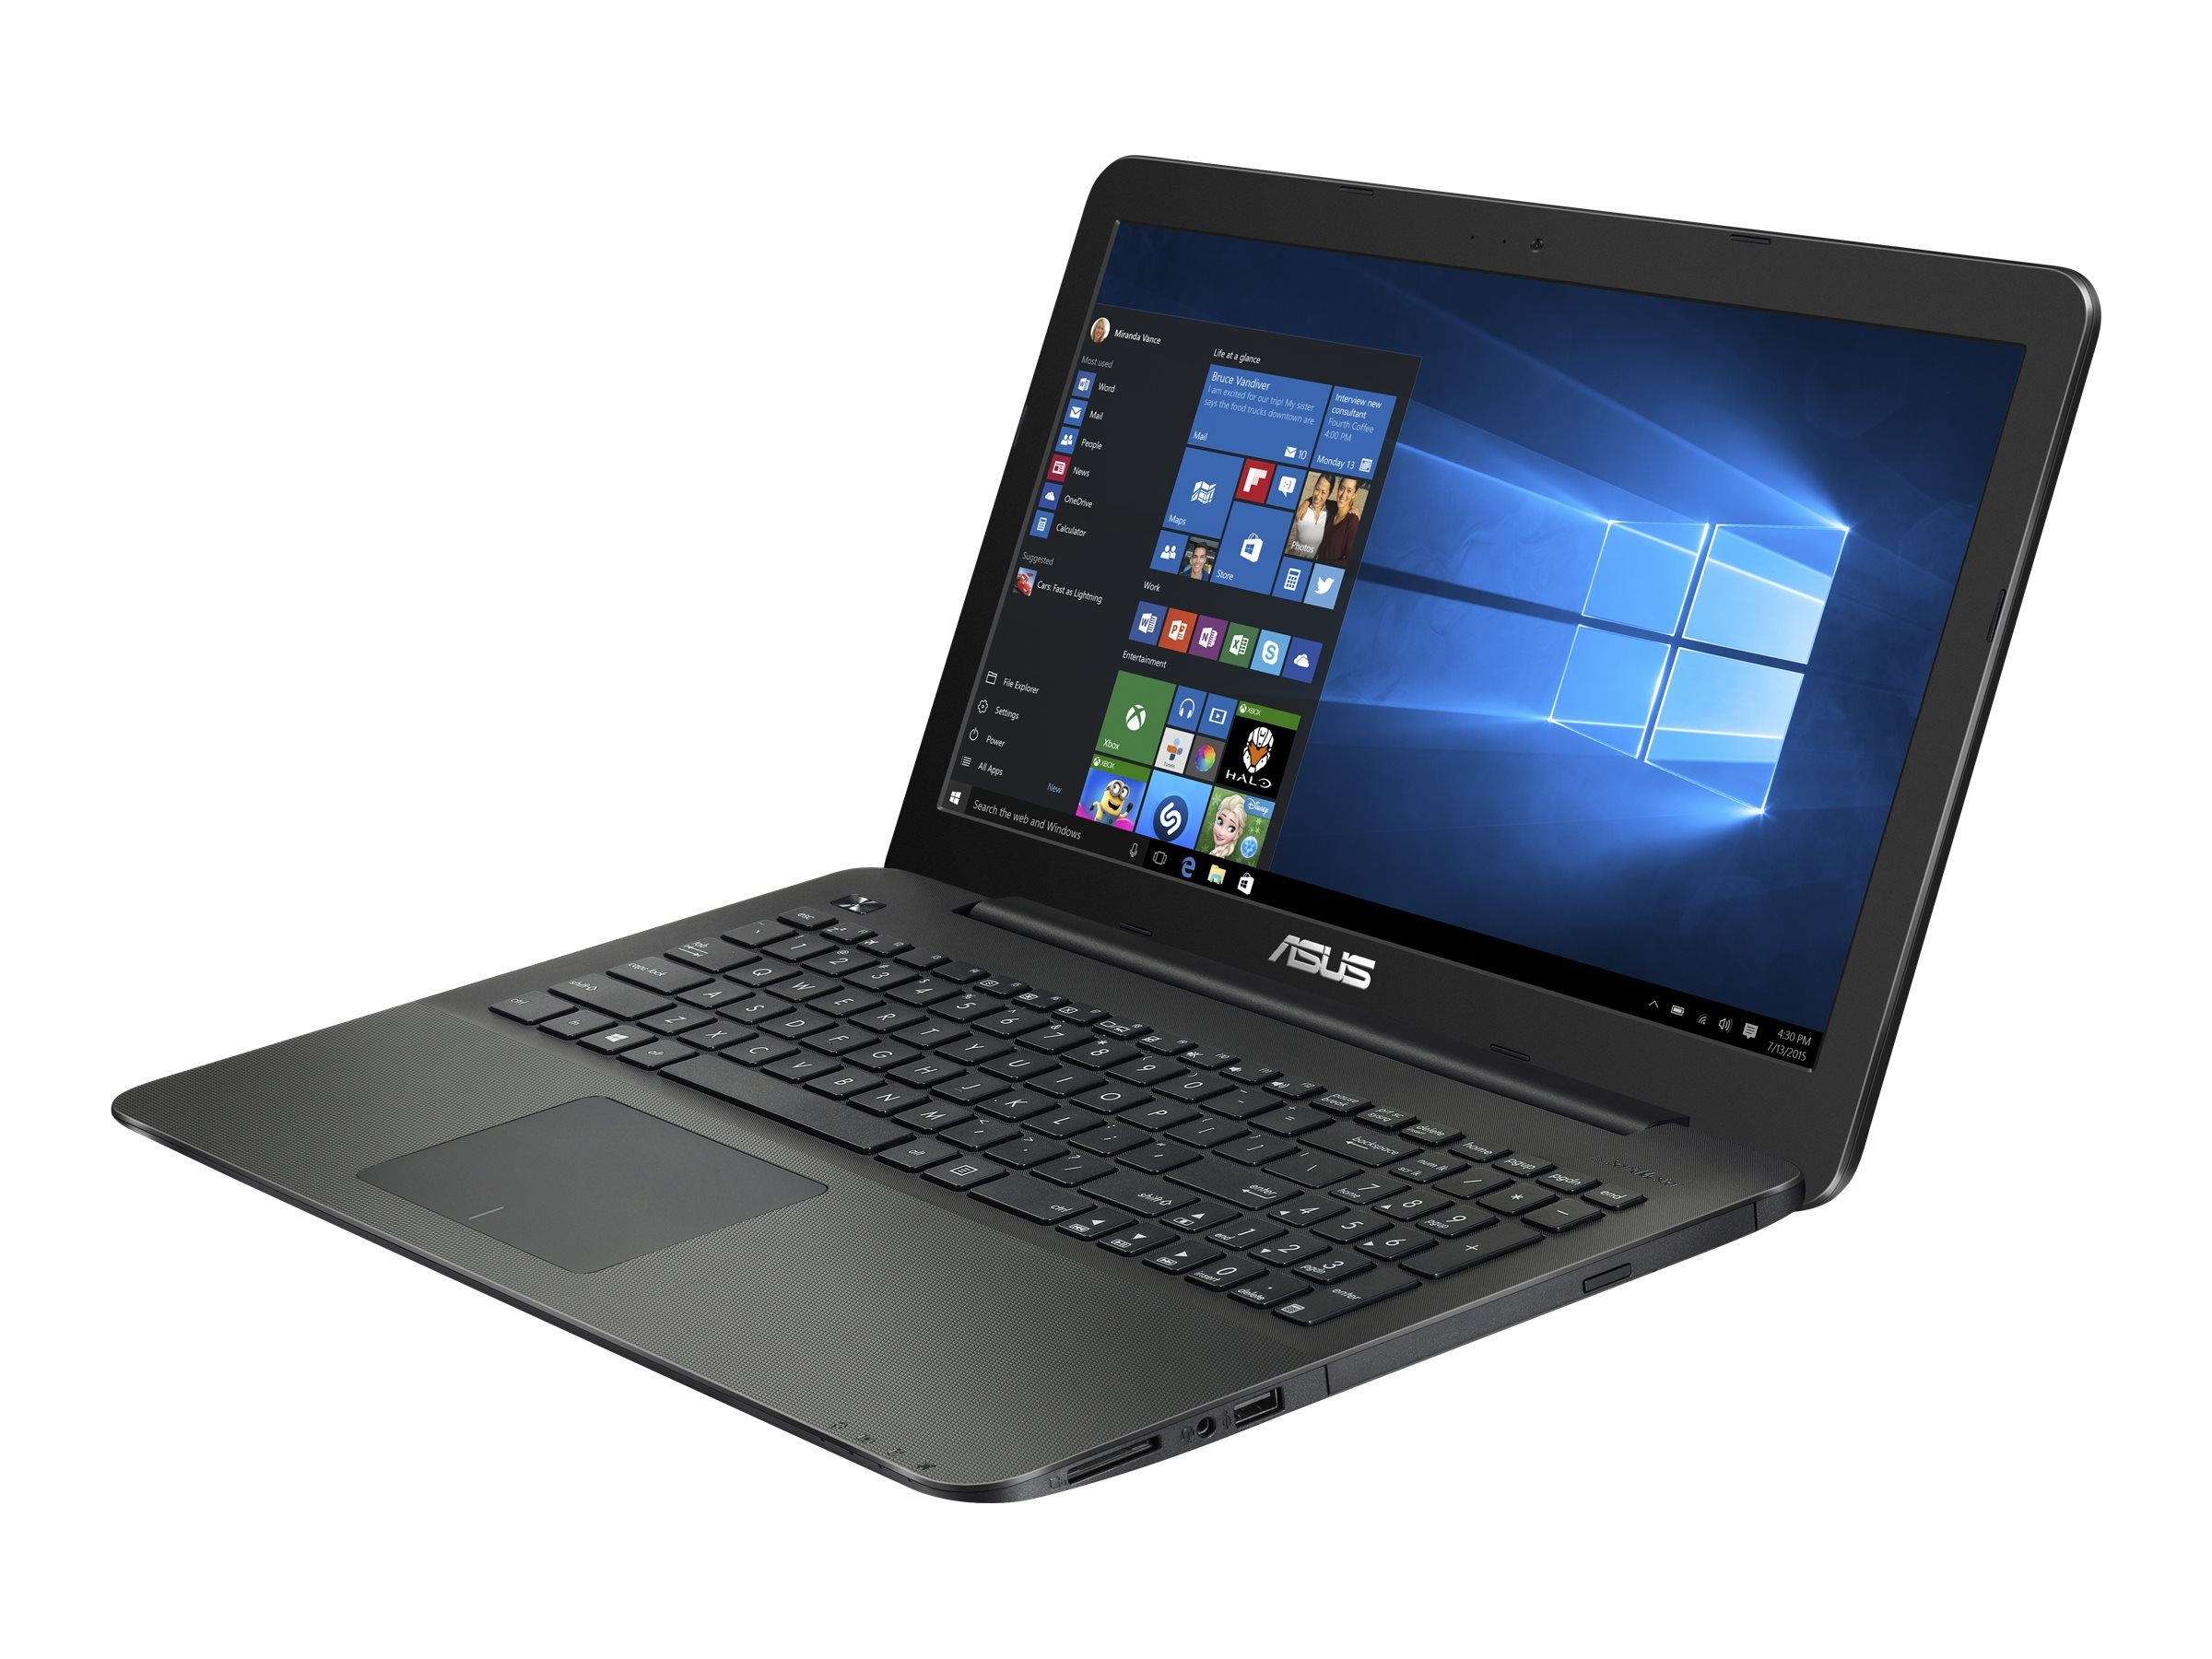 Asus Notebook PC AMD A8-7410 8GB 1TB 15.6 W10